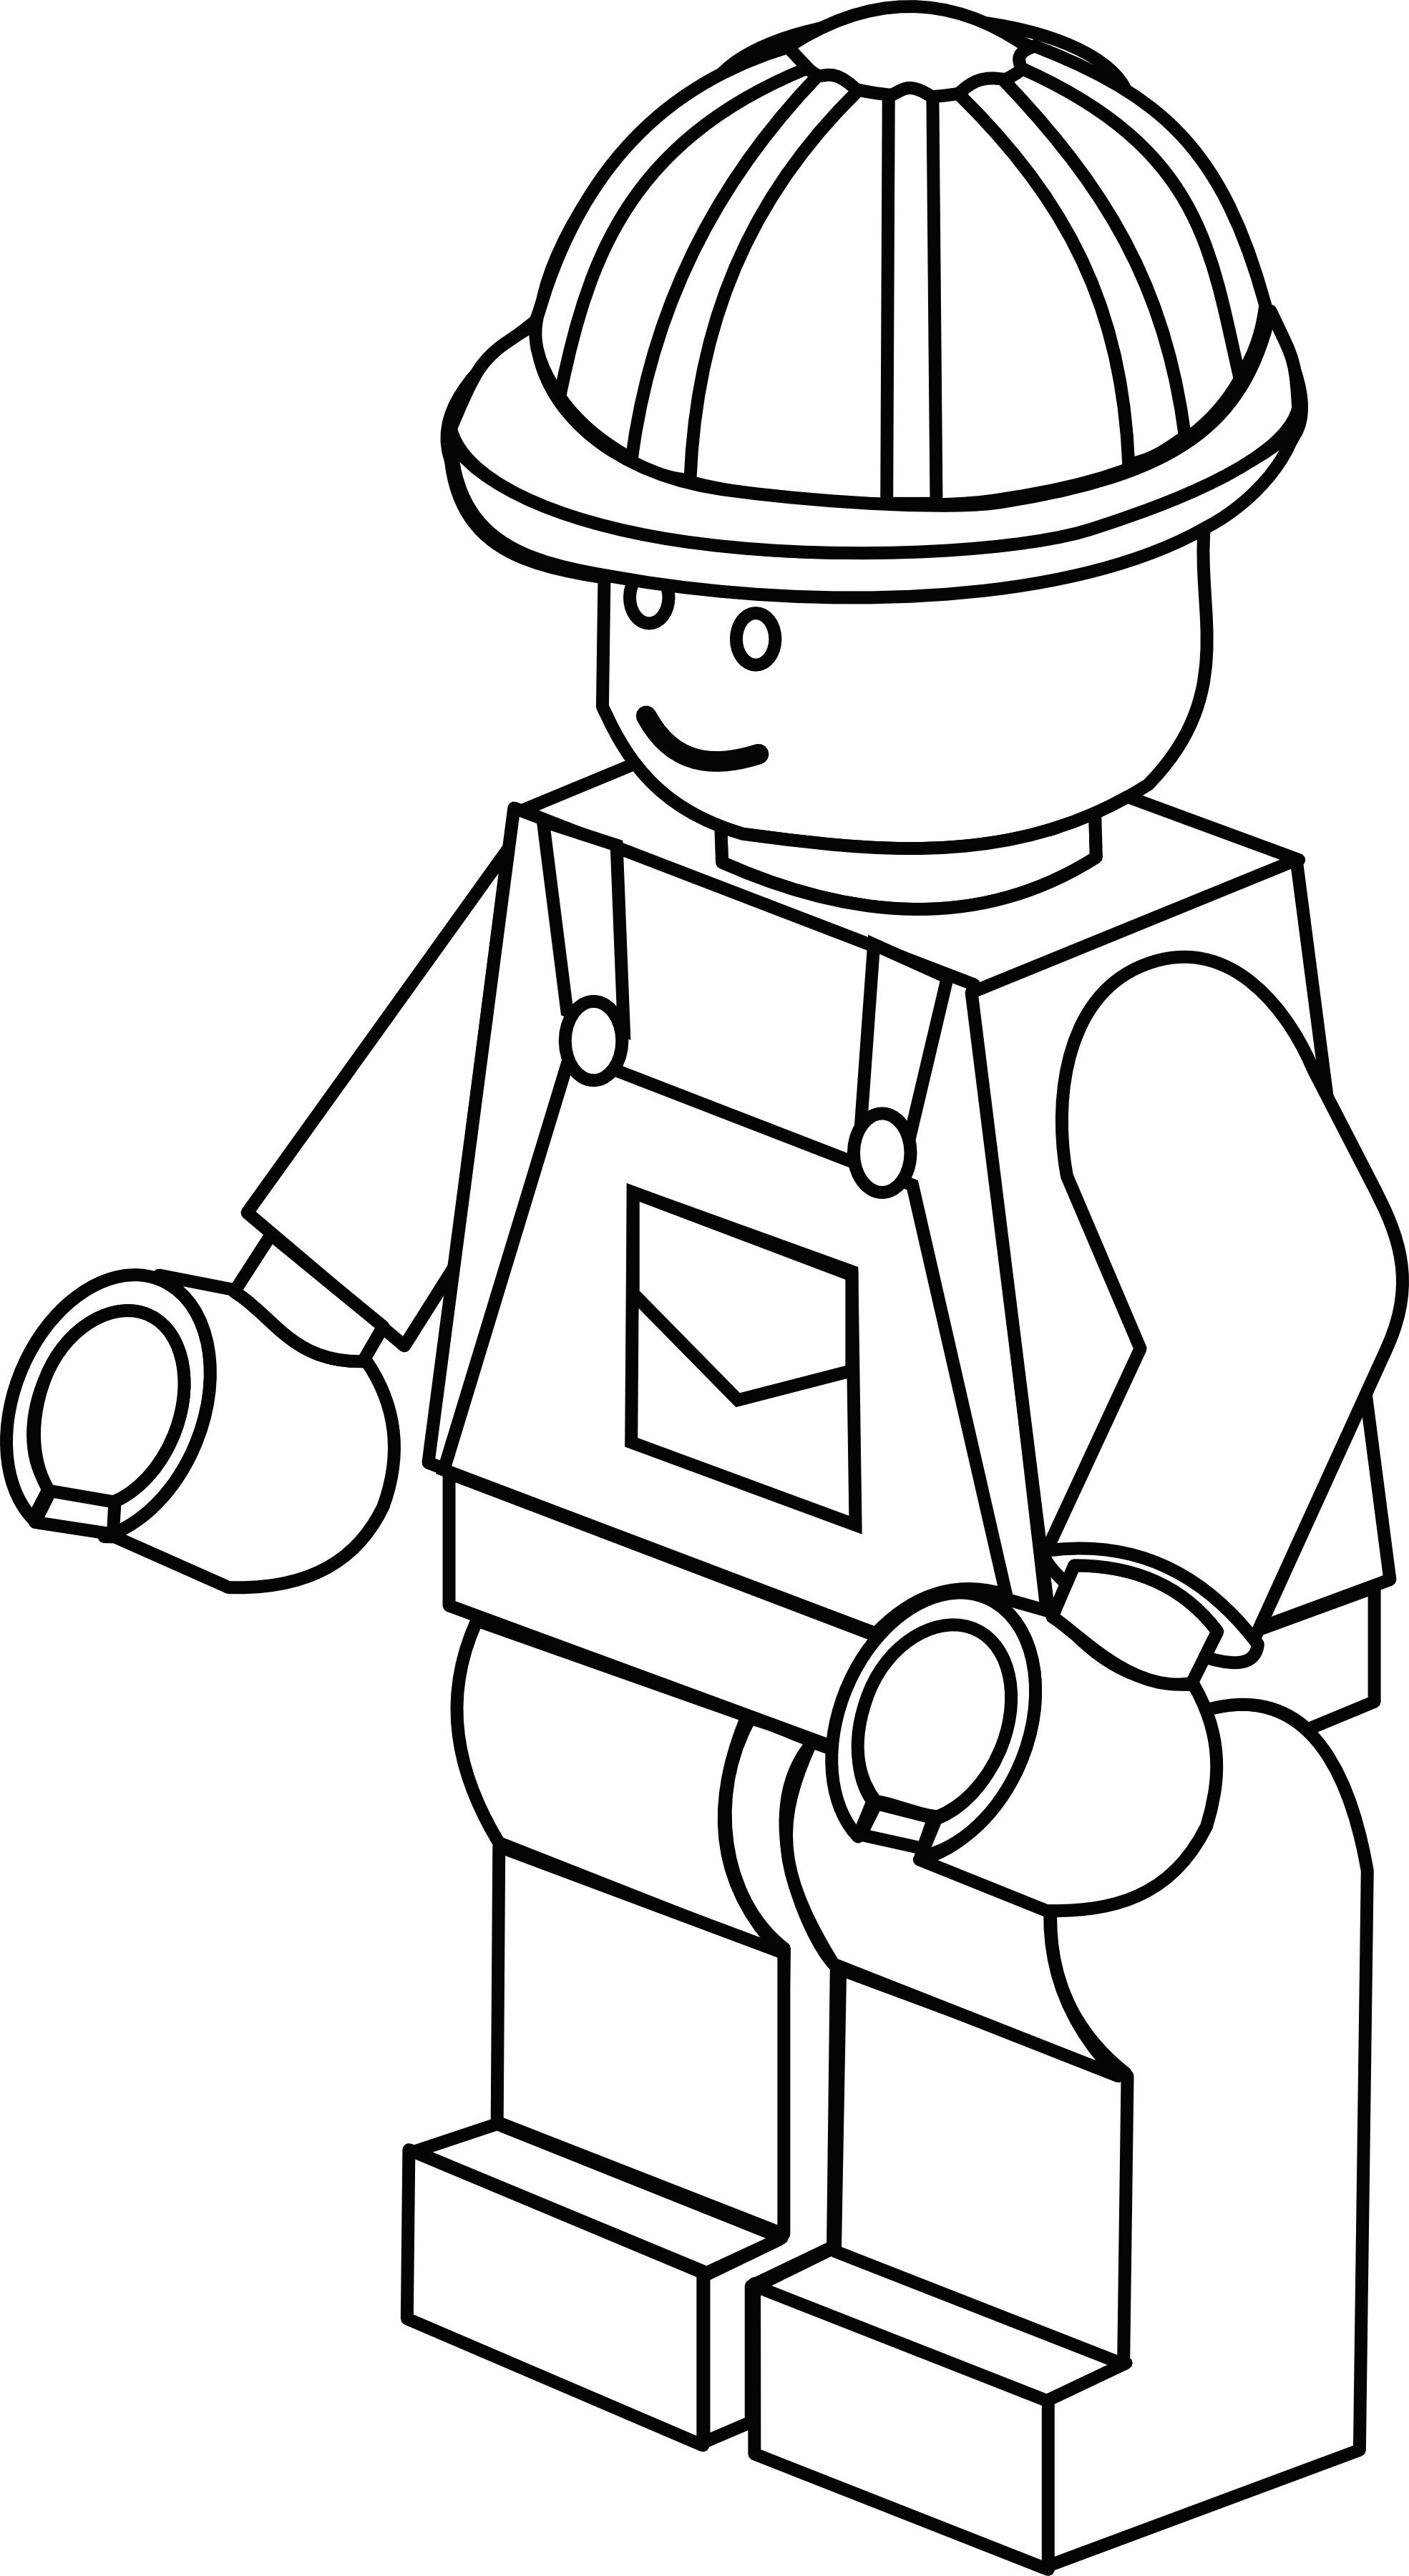 free lego coloring pages to print free coloring pages printable pictures to color kids coloring to print lego free pages